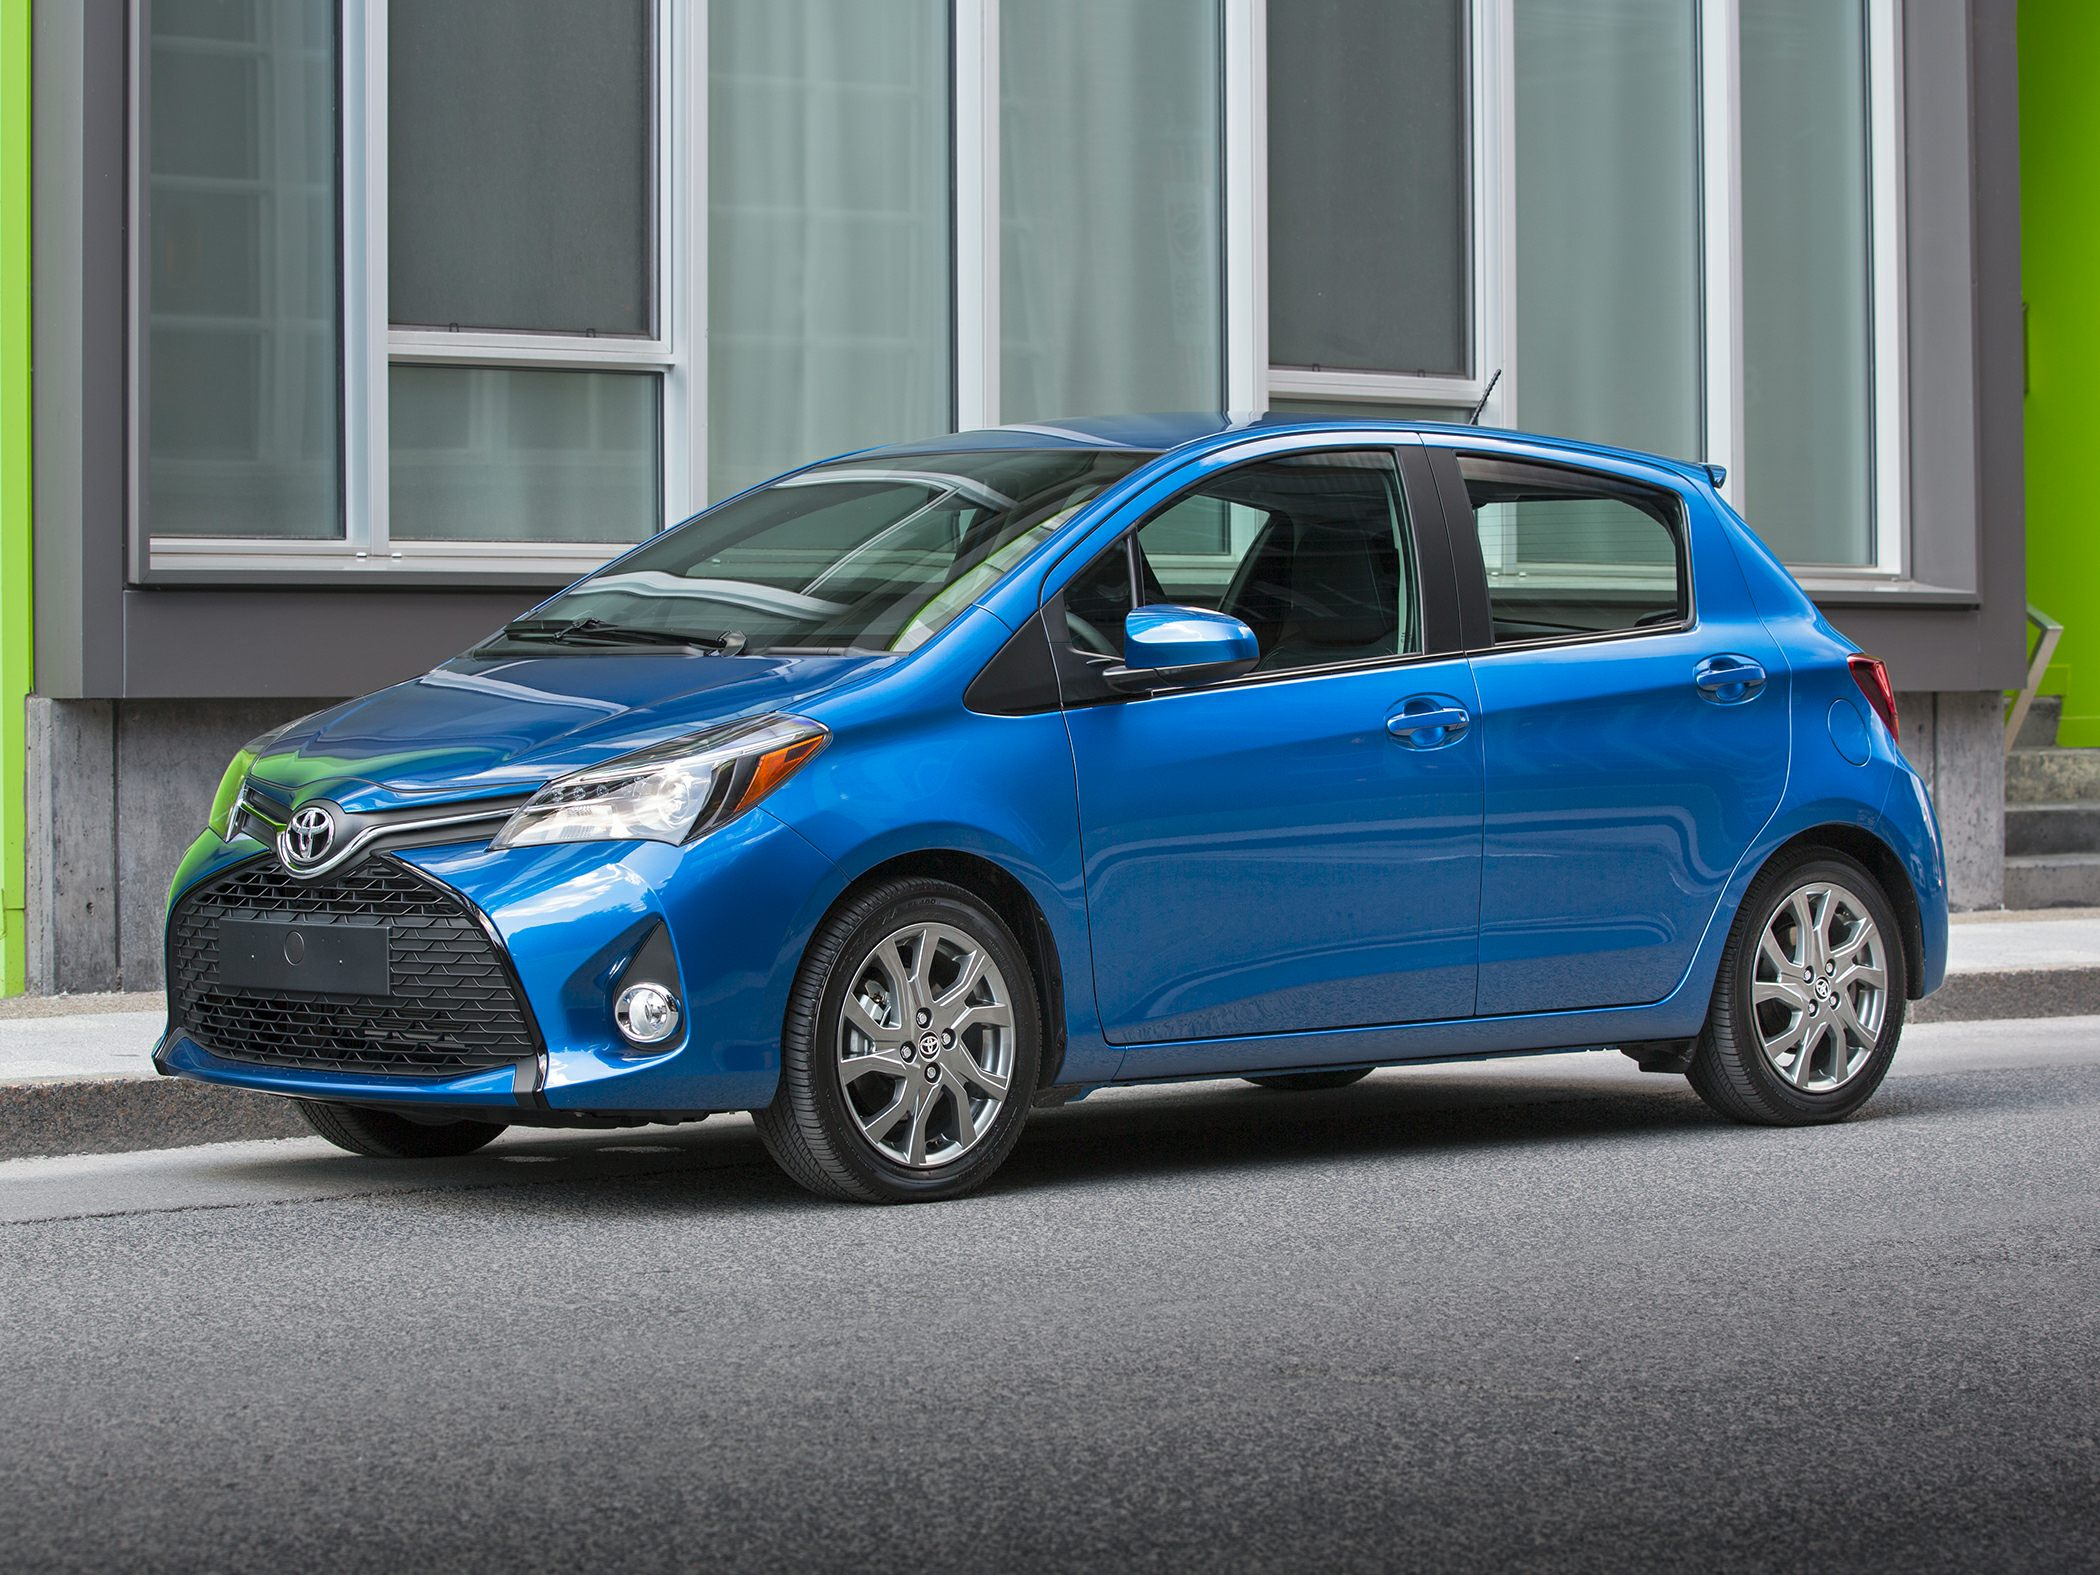 2017 toyota yaris deals prices incentives leases overview carsdirect. Black Bedroom Furniture Sets. Home Design Ideas